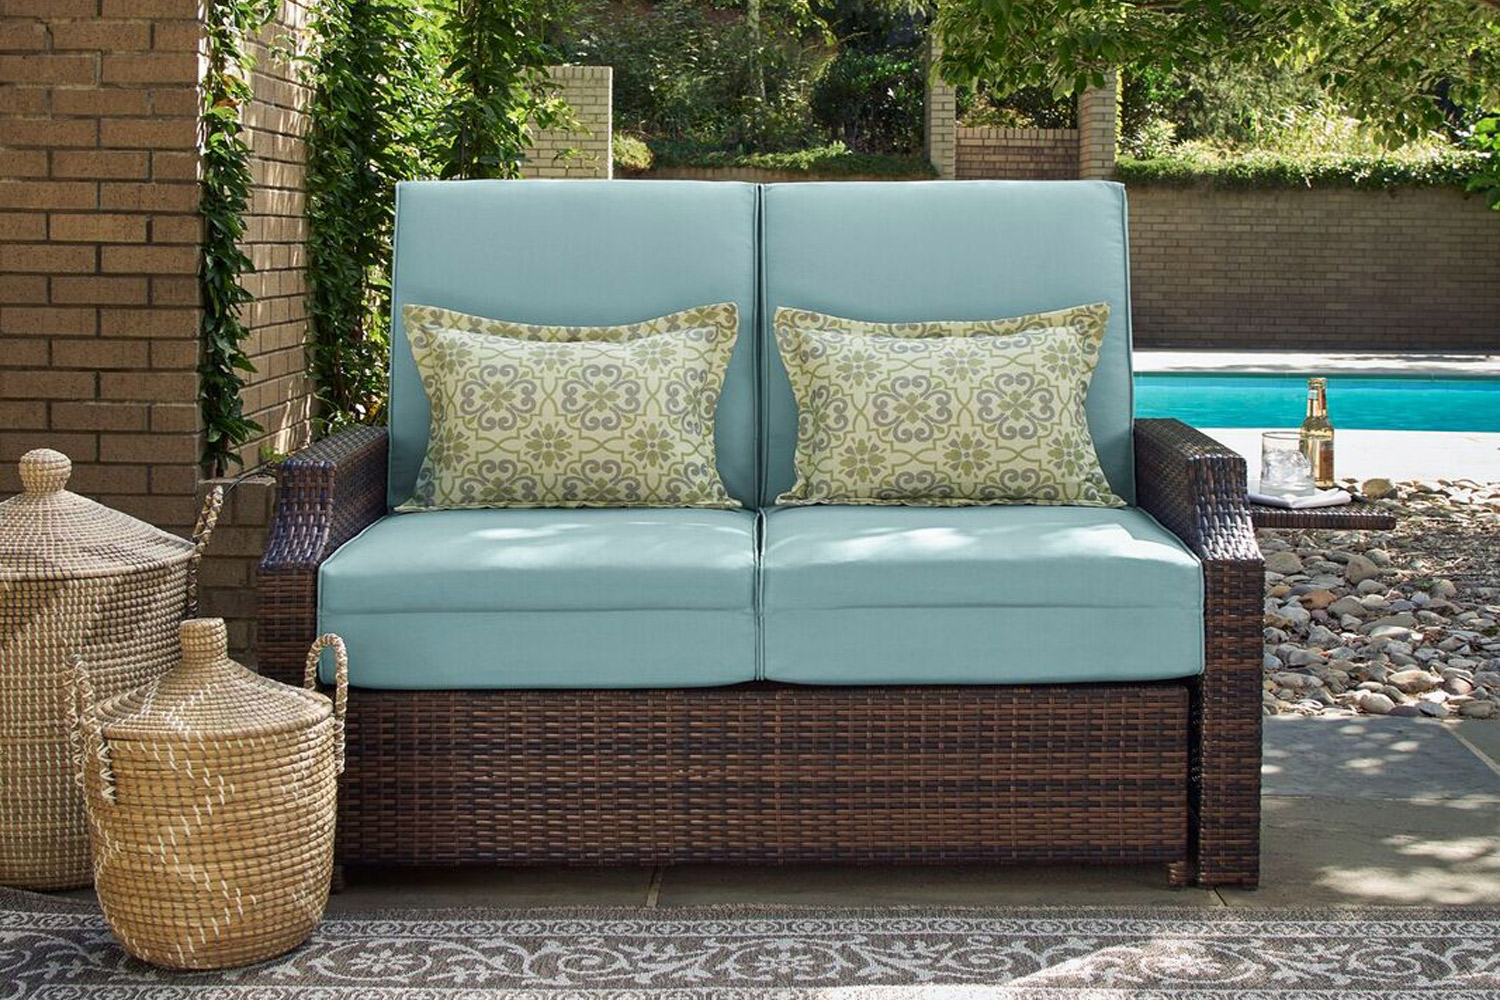 Outdoor Futon Loveseat Sofa Bed Bermuda The Futon Shop